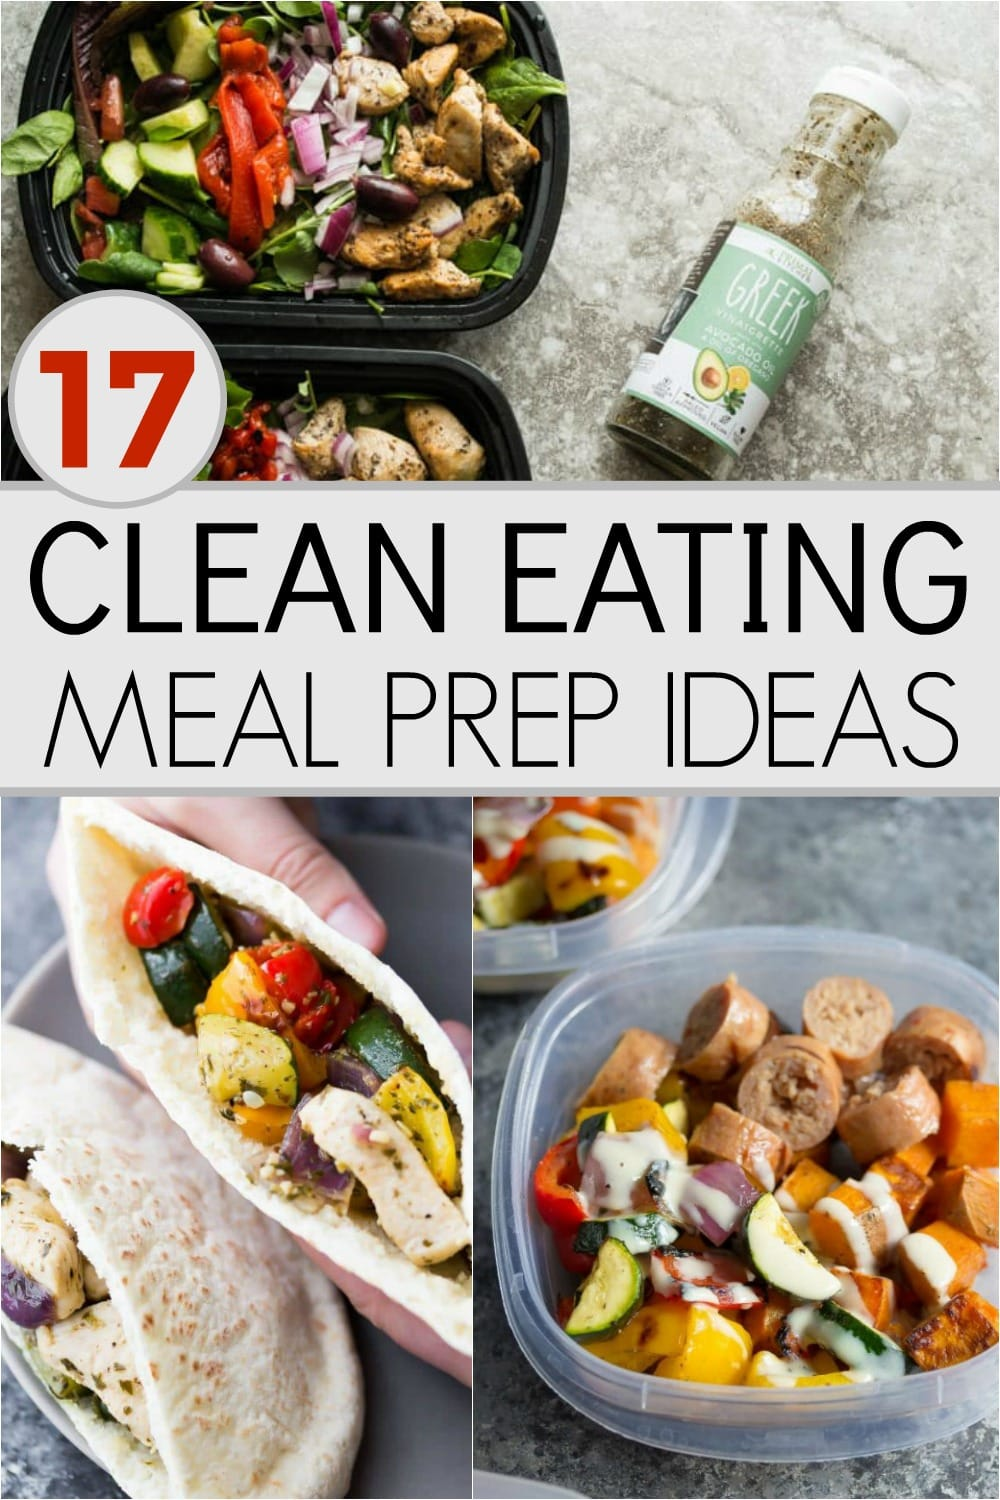 I'm just getting into meal prepping and the main problem I have had is that a lot of the recipes are either boring or unhealthy. I was super excited to find these clean eating recipes that are perfect for meal prep!!